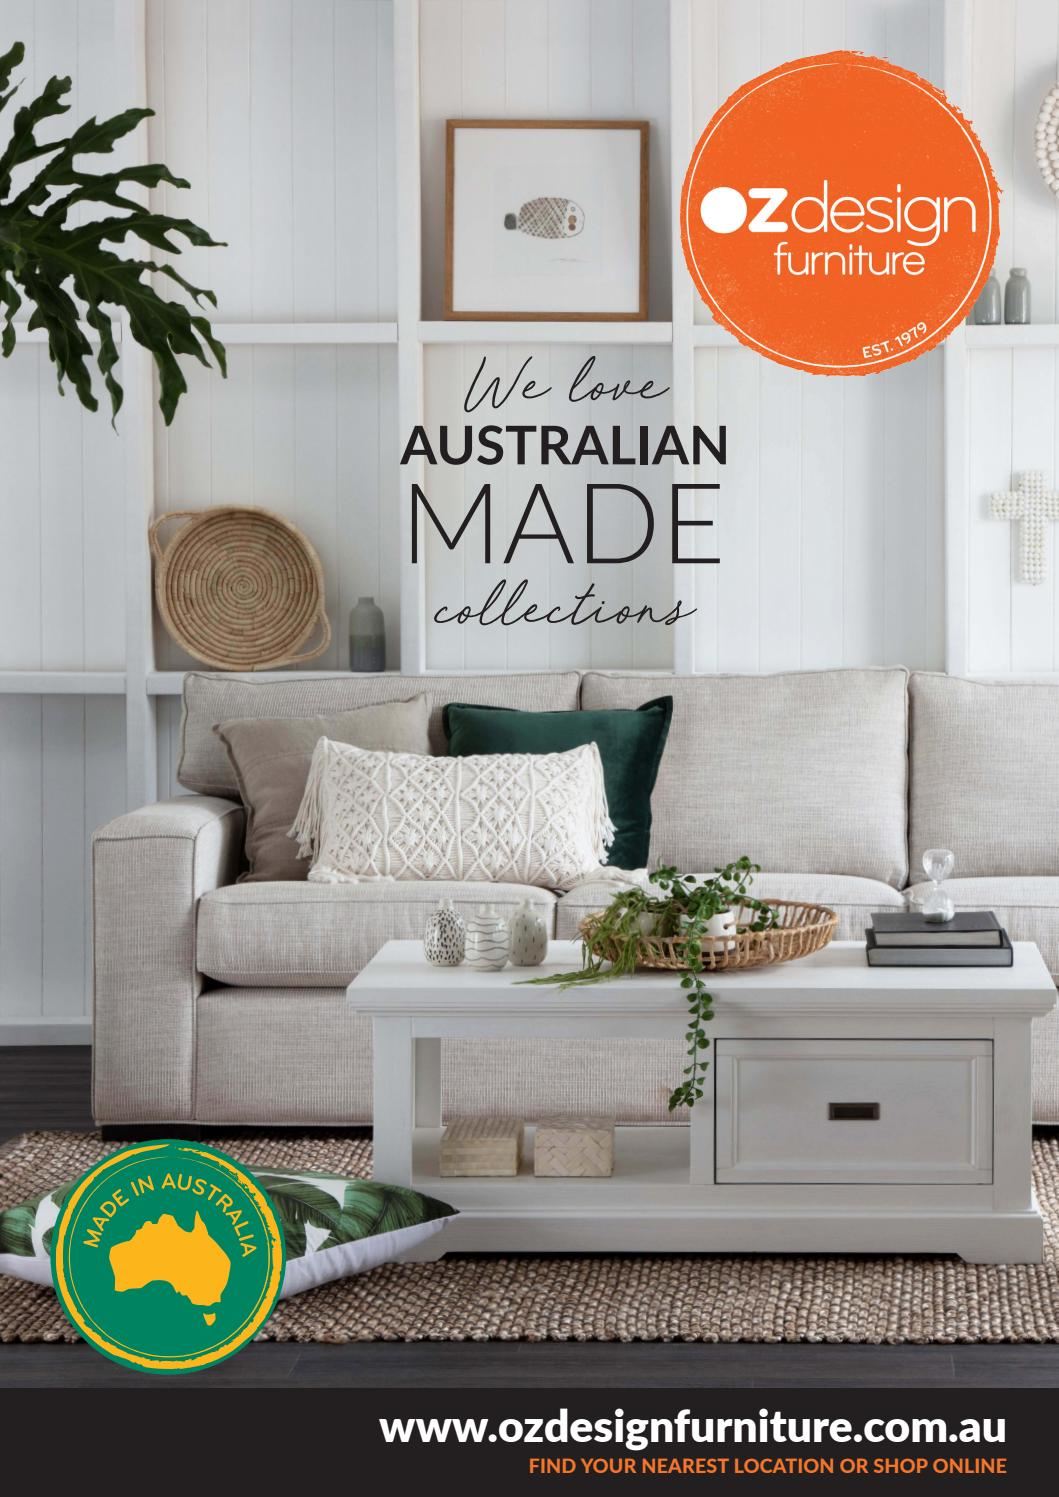 Furniture Shops In Hoppers Crossing We Love Australian Made Collections Oz Design Furniture By Oz